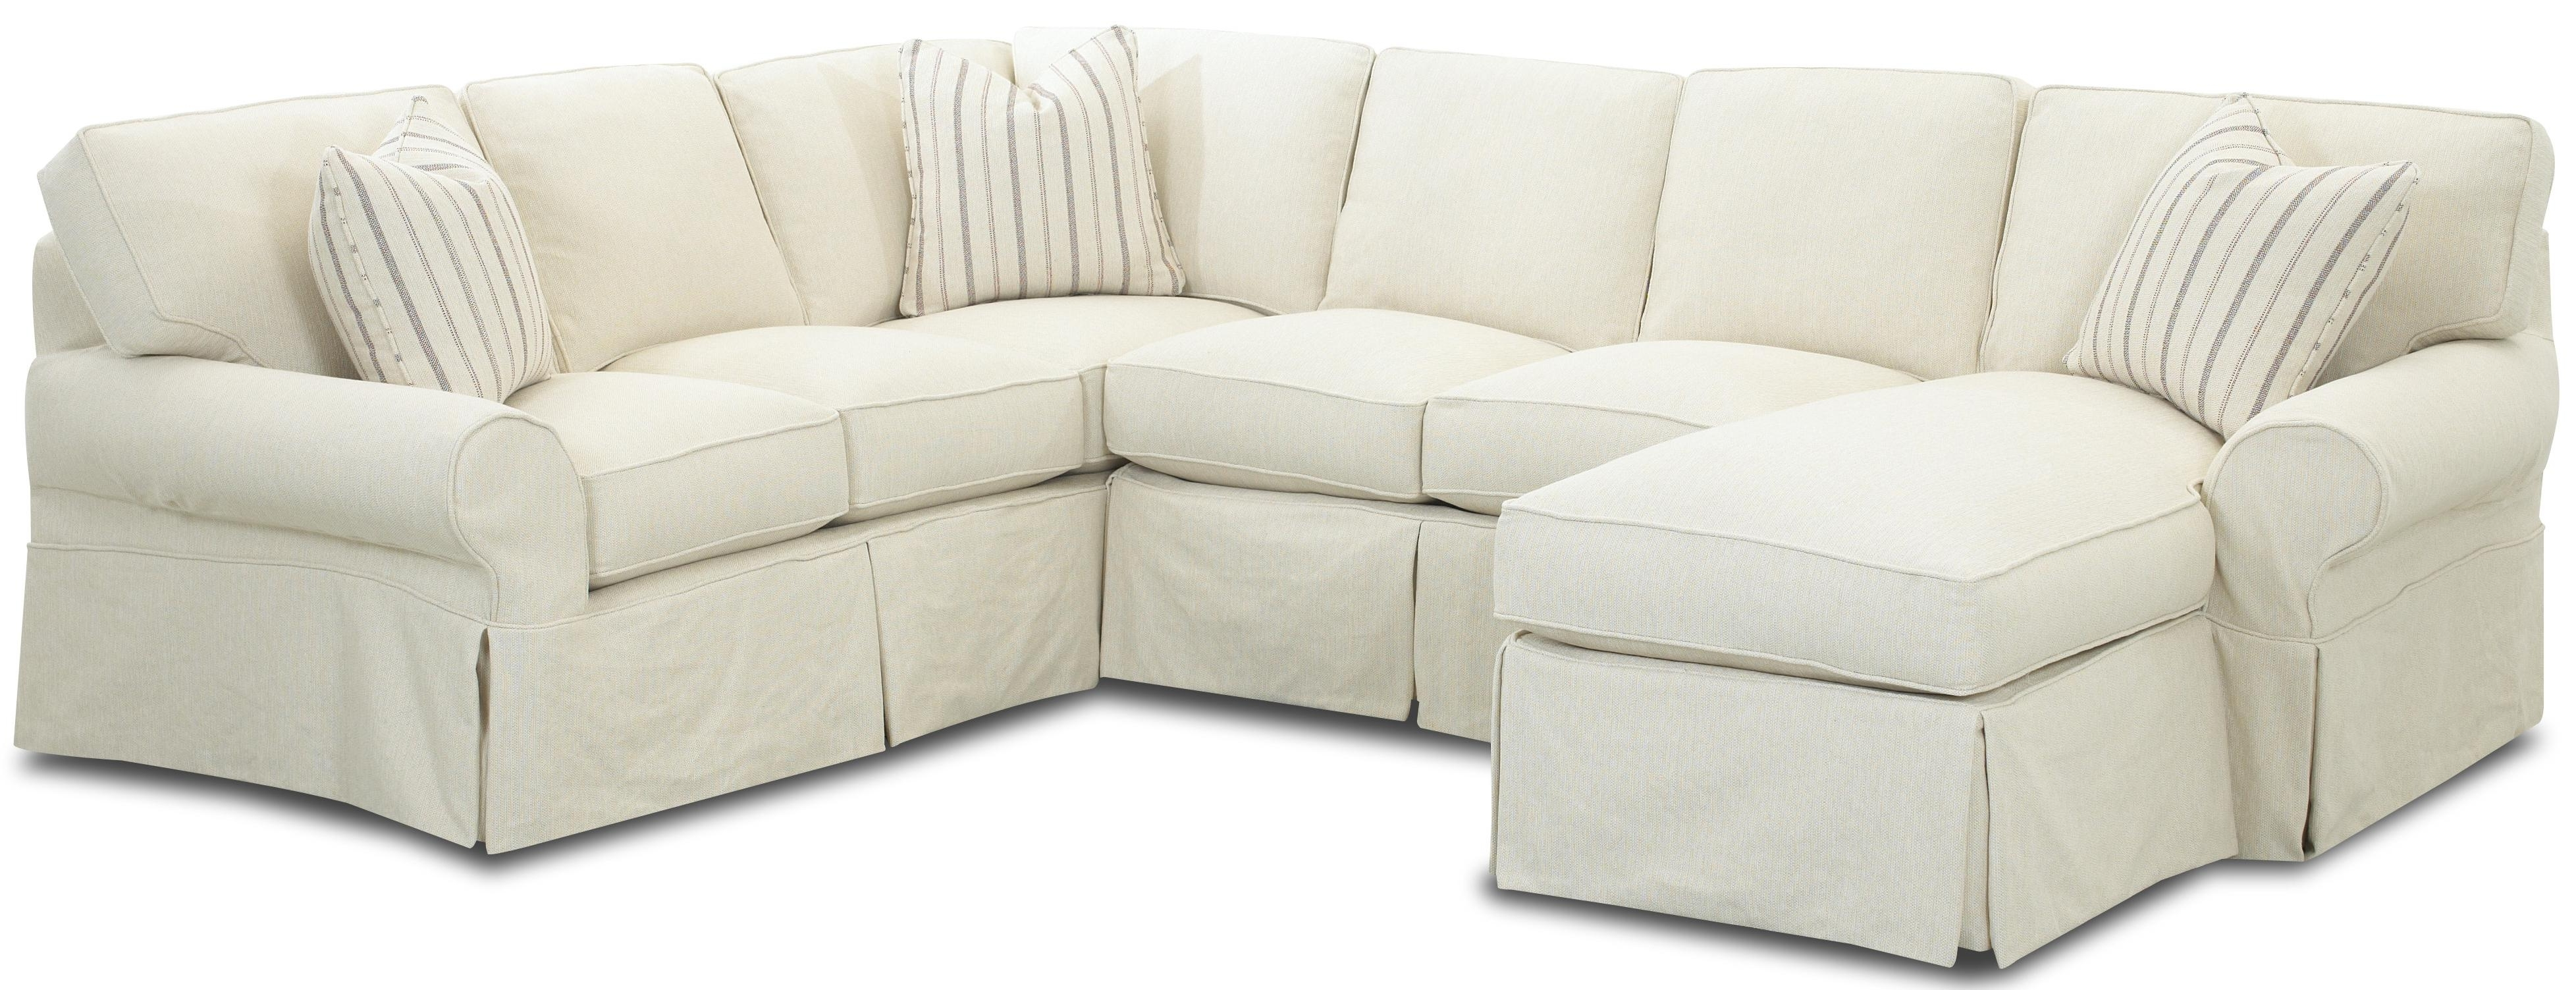 Most Current Best Slipcover Sectional Sofa With Chaise 75 In Office Sofa Ideas Intended For Chaise Slipcovers (View 8 of 15)